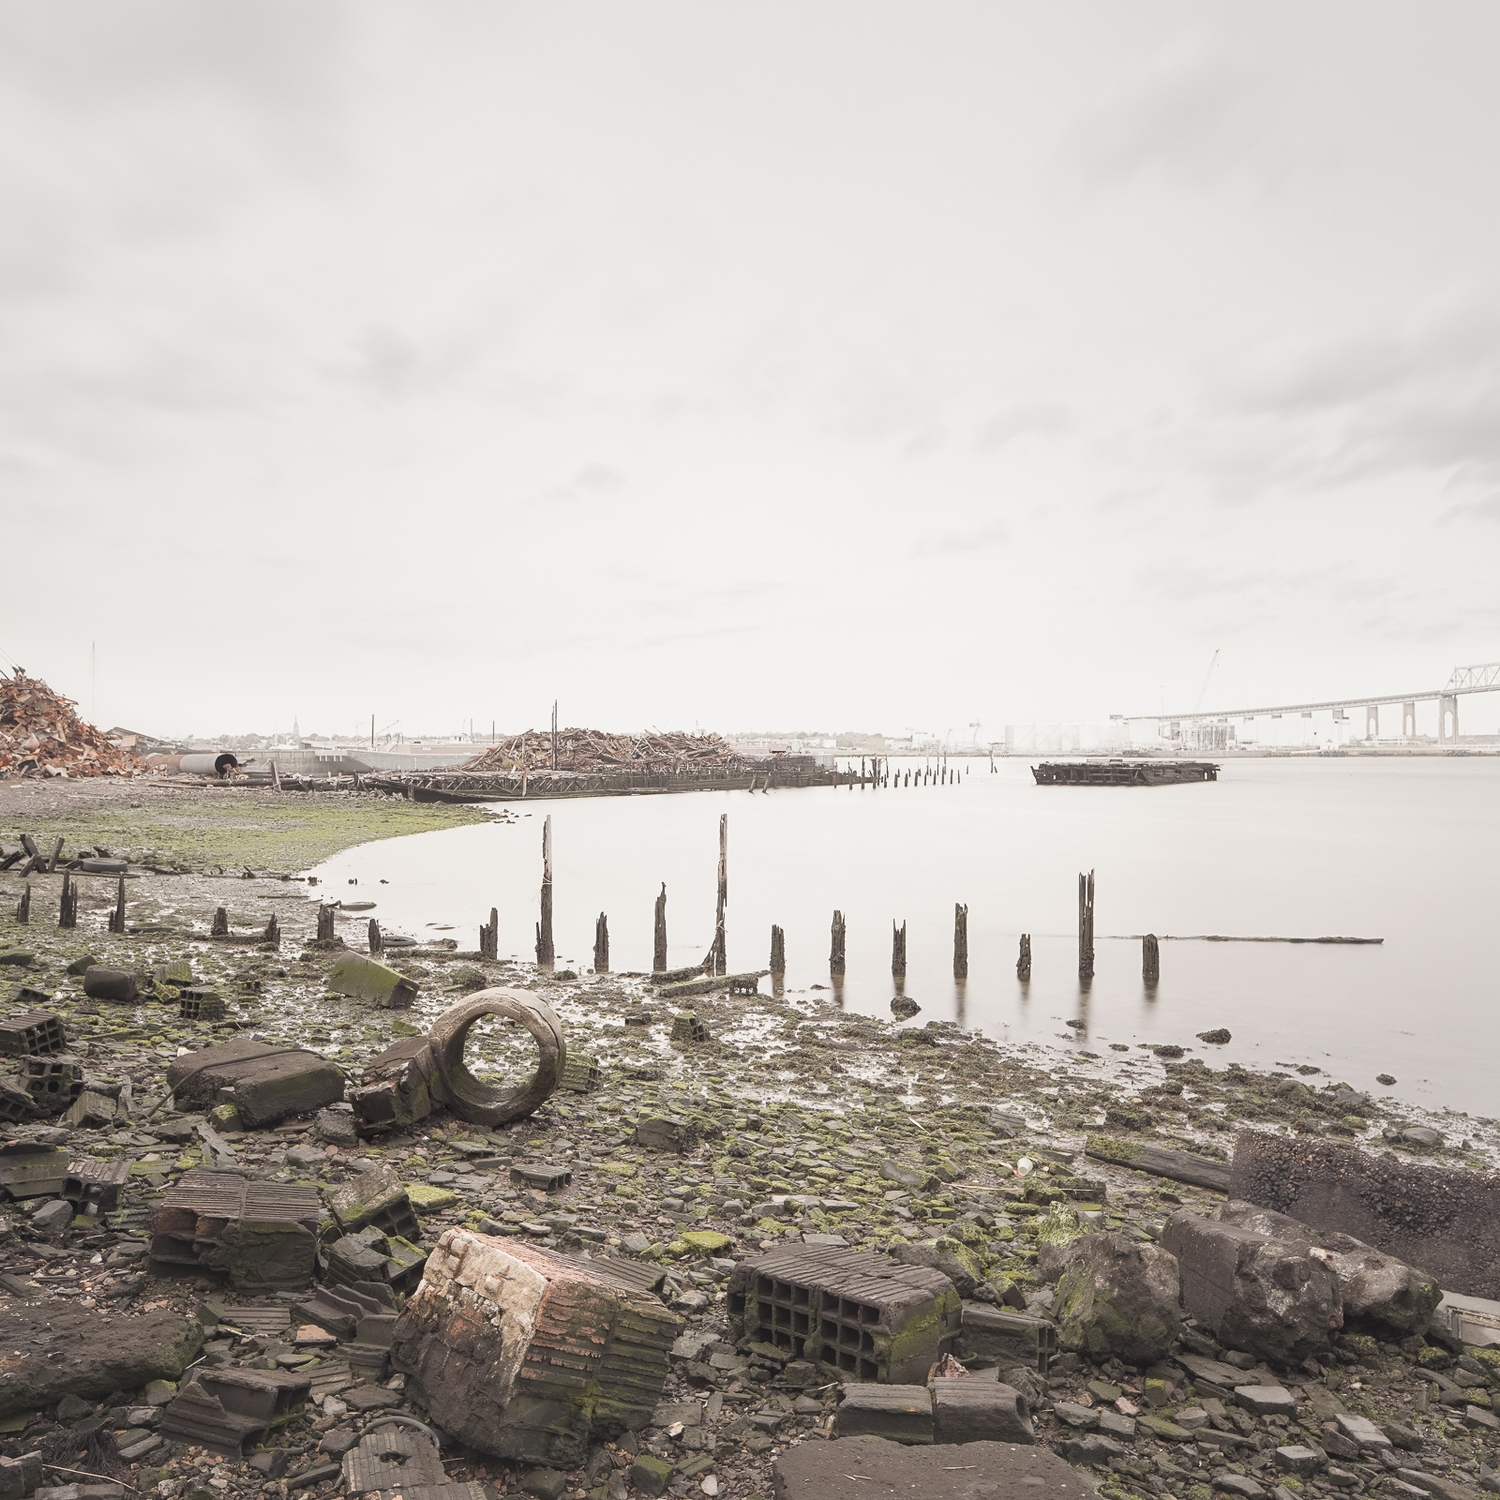 The remains of the Atlantic Terra Cotta Company factory line the shores of the Arthur Kill at the end of Ellis Street.